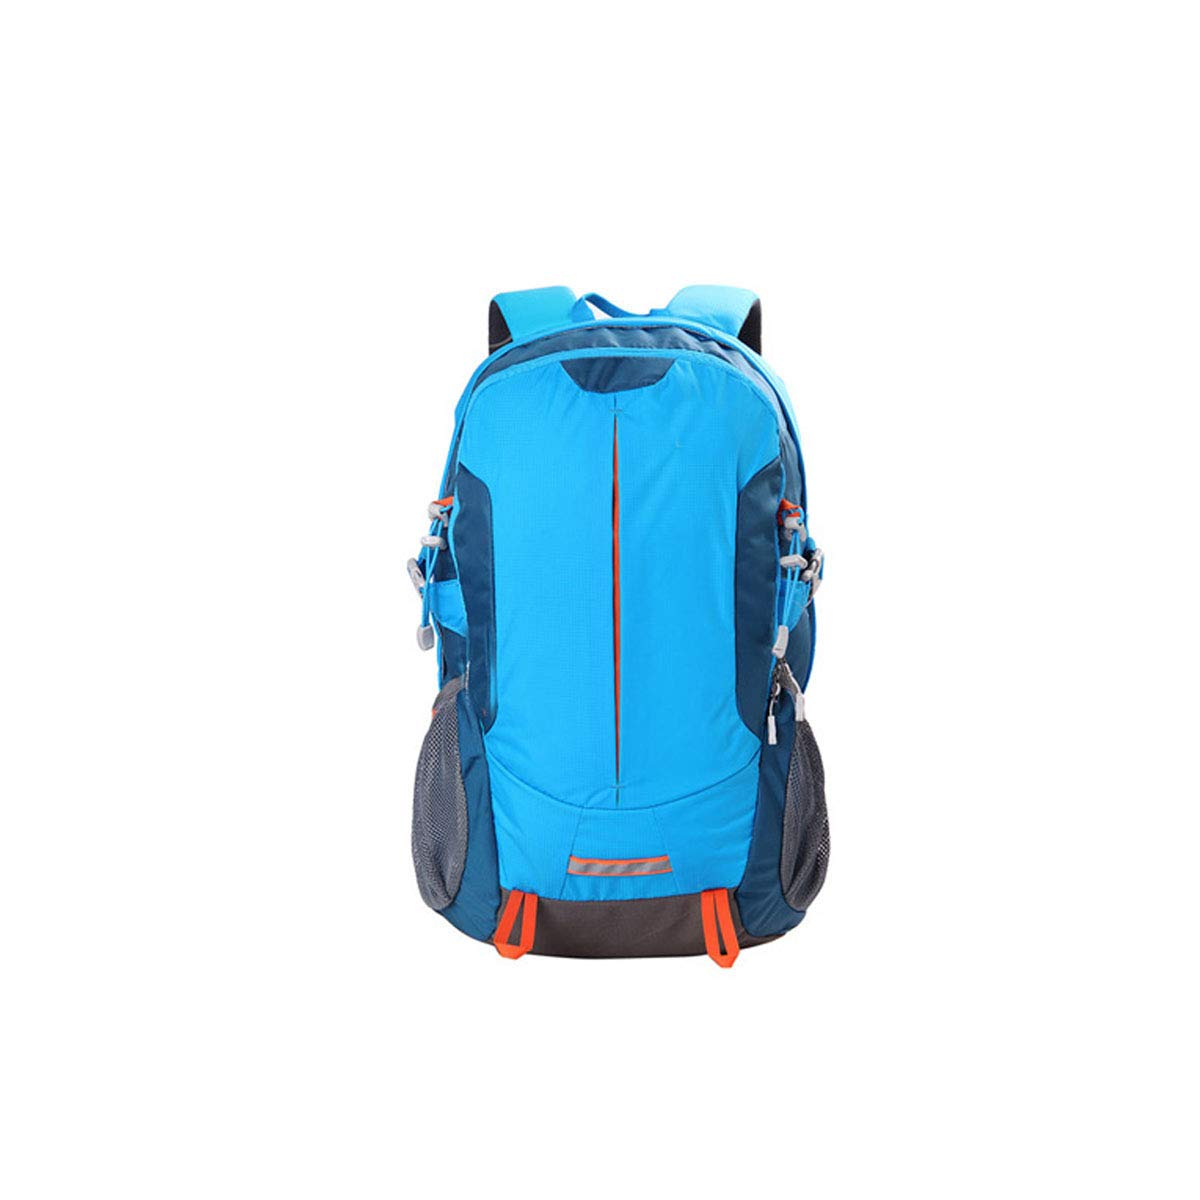 Chenjinxiang01 Backpack for Man,Outdoor Hiking Trip 30 Liter Backpack Blue Lake Color : Lake Blue